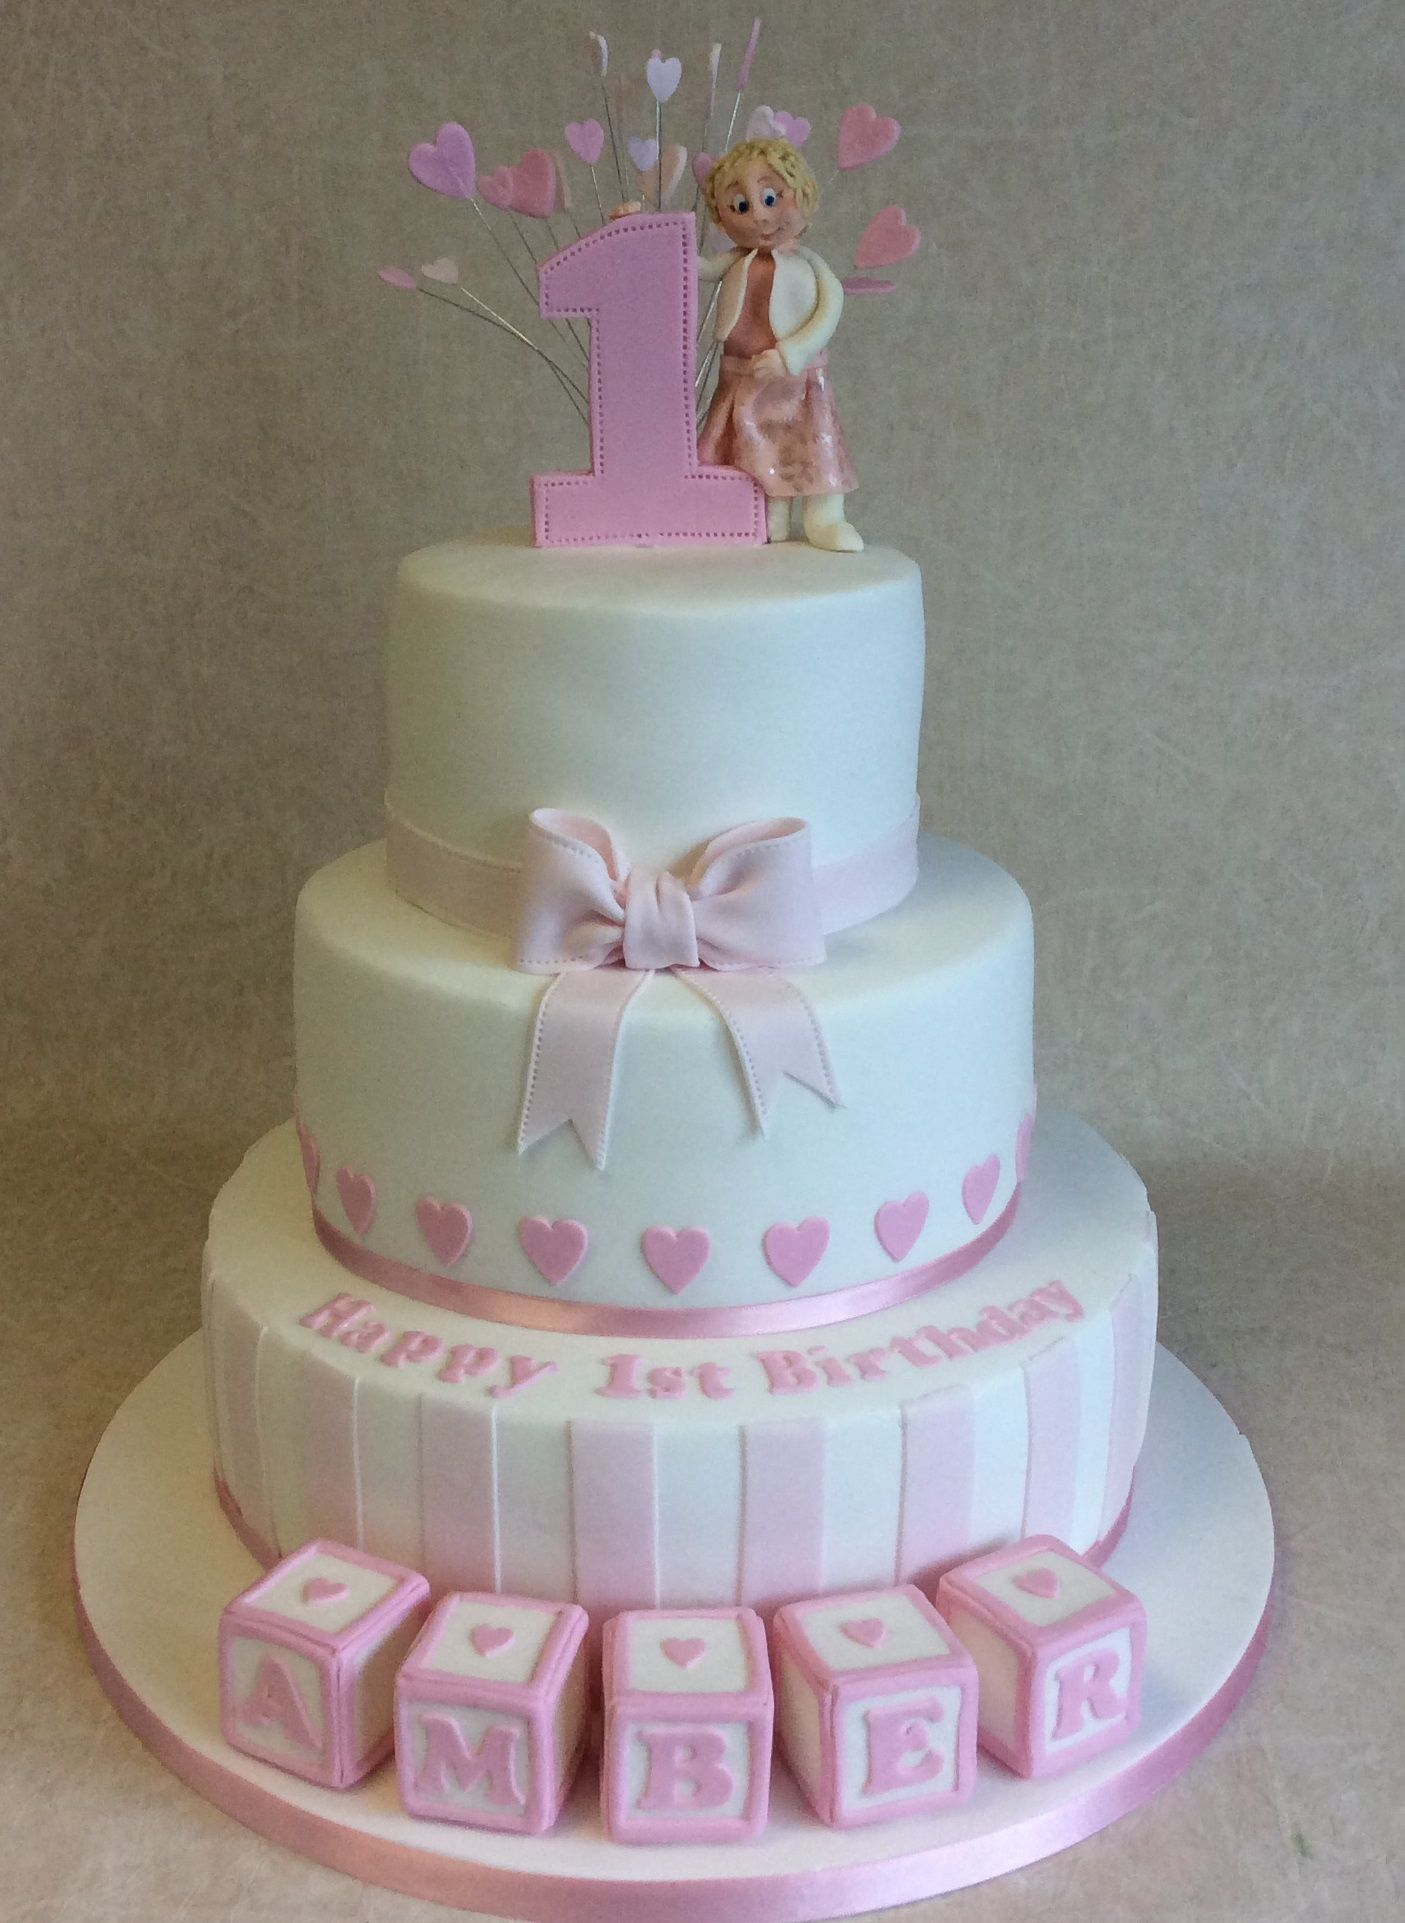 3 Tier Blocks And Stripes 1st Birthday Cake In Classic Baby Pink And